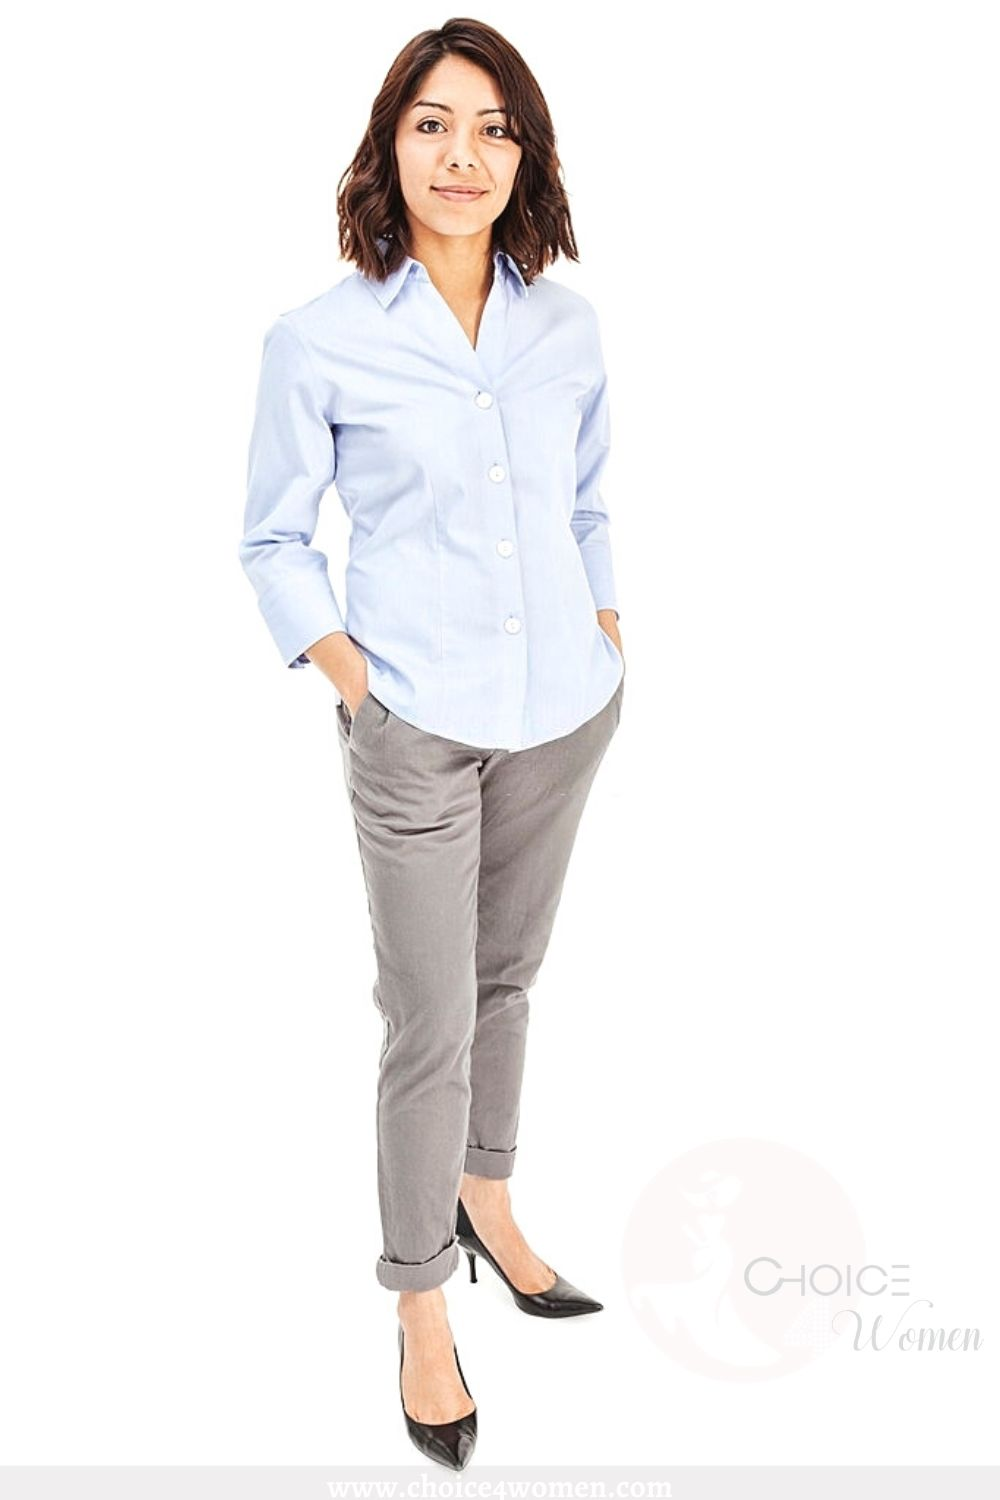 business outfits for women in light fabrics